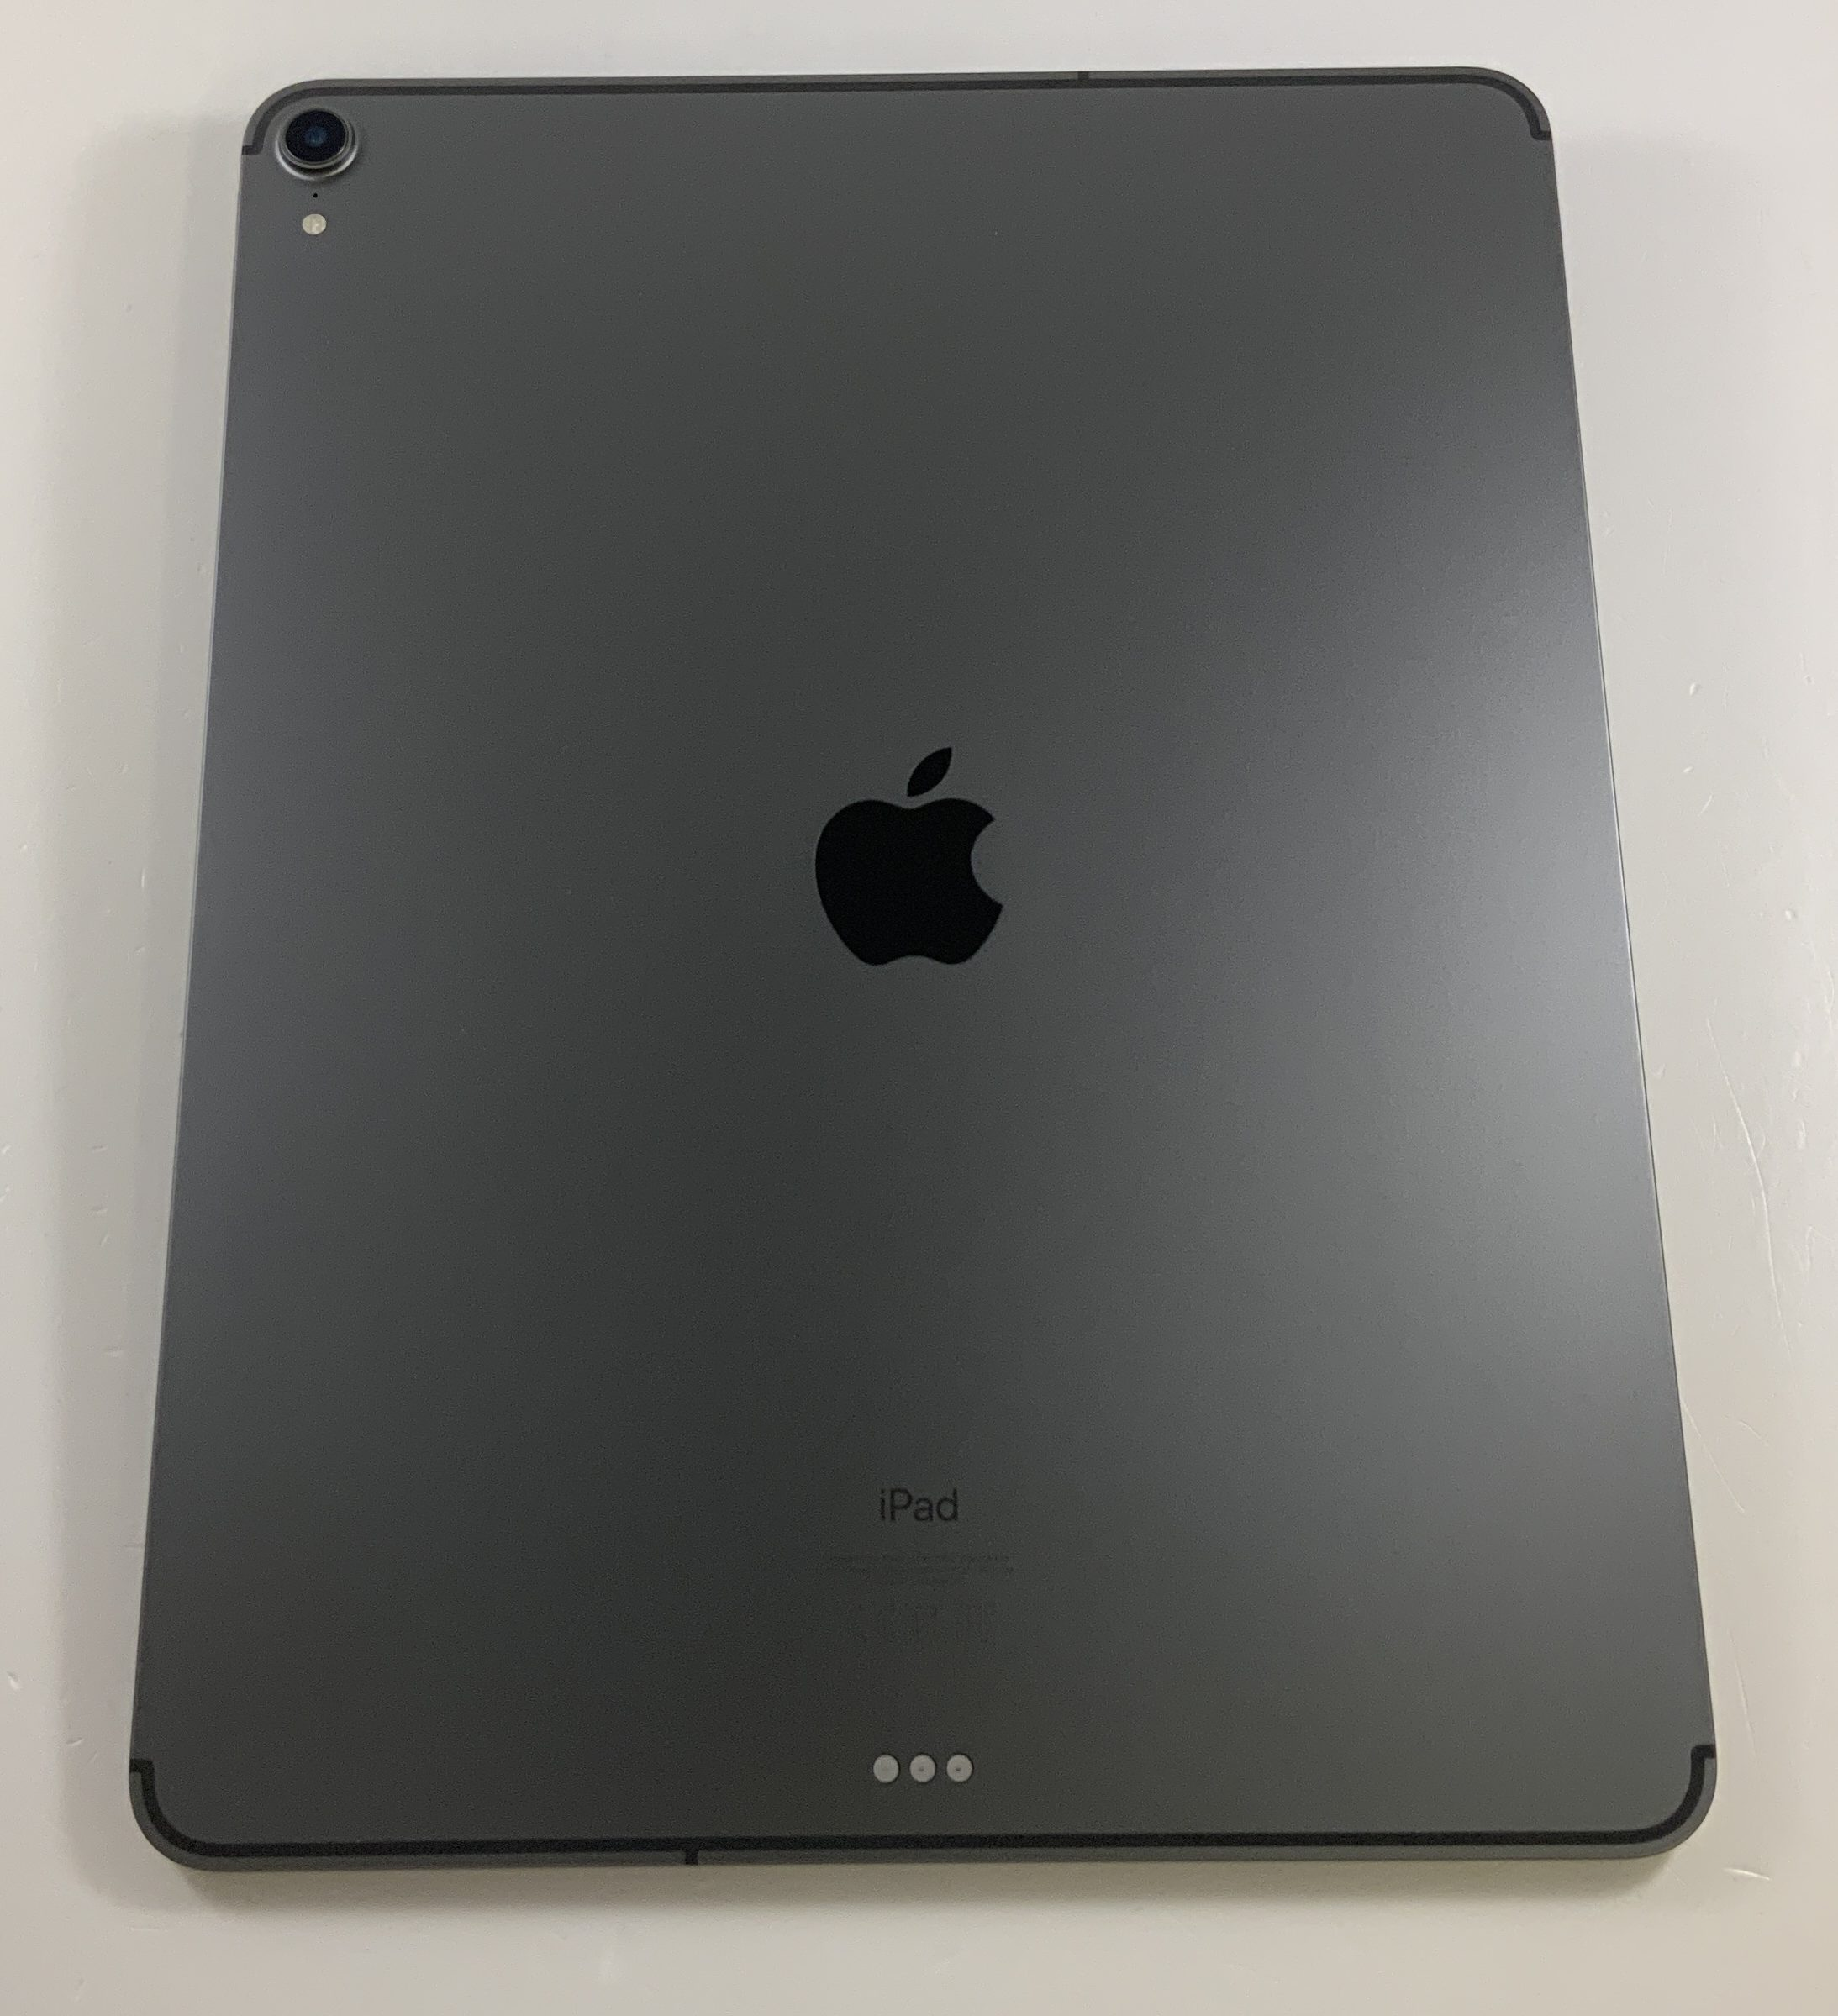 "iPad Pro 12.9"" Wi-Fi + Cellular (3rd Gen) 64GB, 64GB, Space Gray, Afbeelding 2"